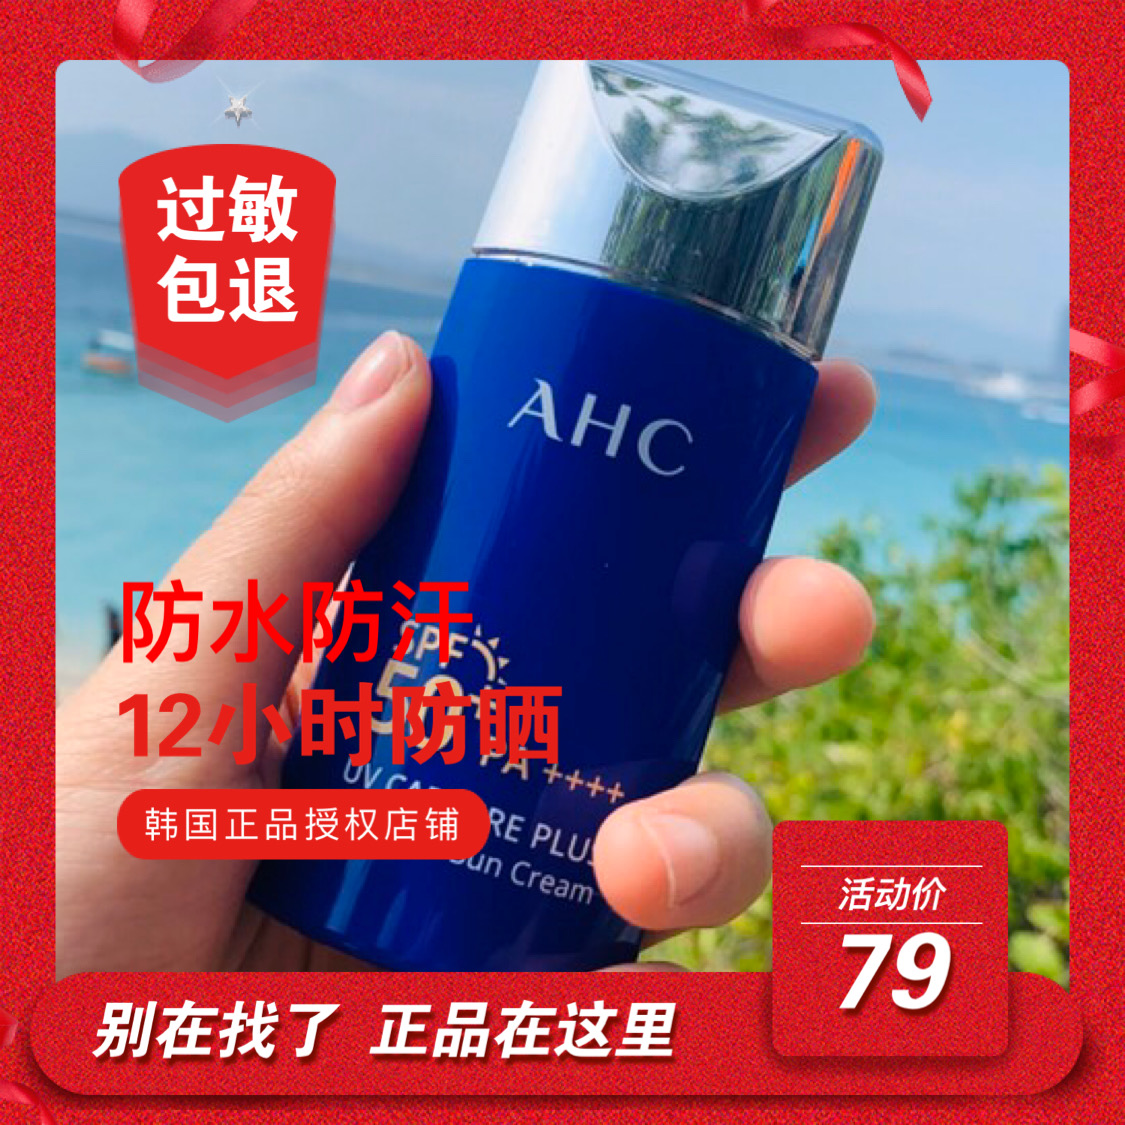 AHC small blue bottle sunscreen womens two in one genuine mens face small blue can isolation milk refreshing and oil free